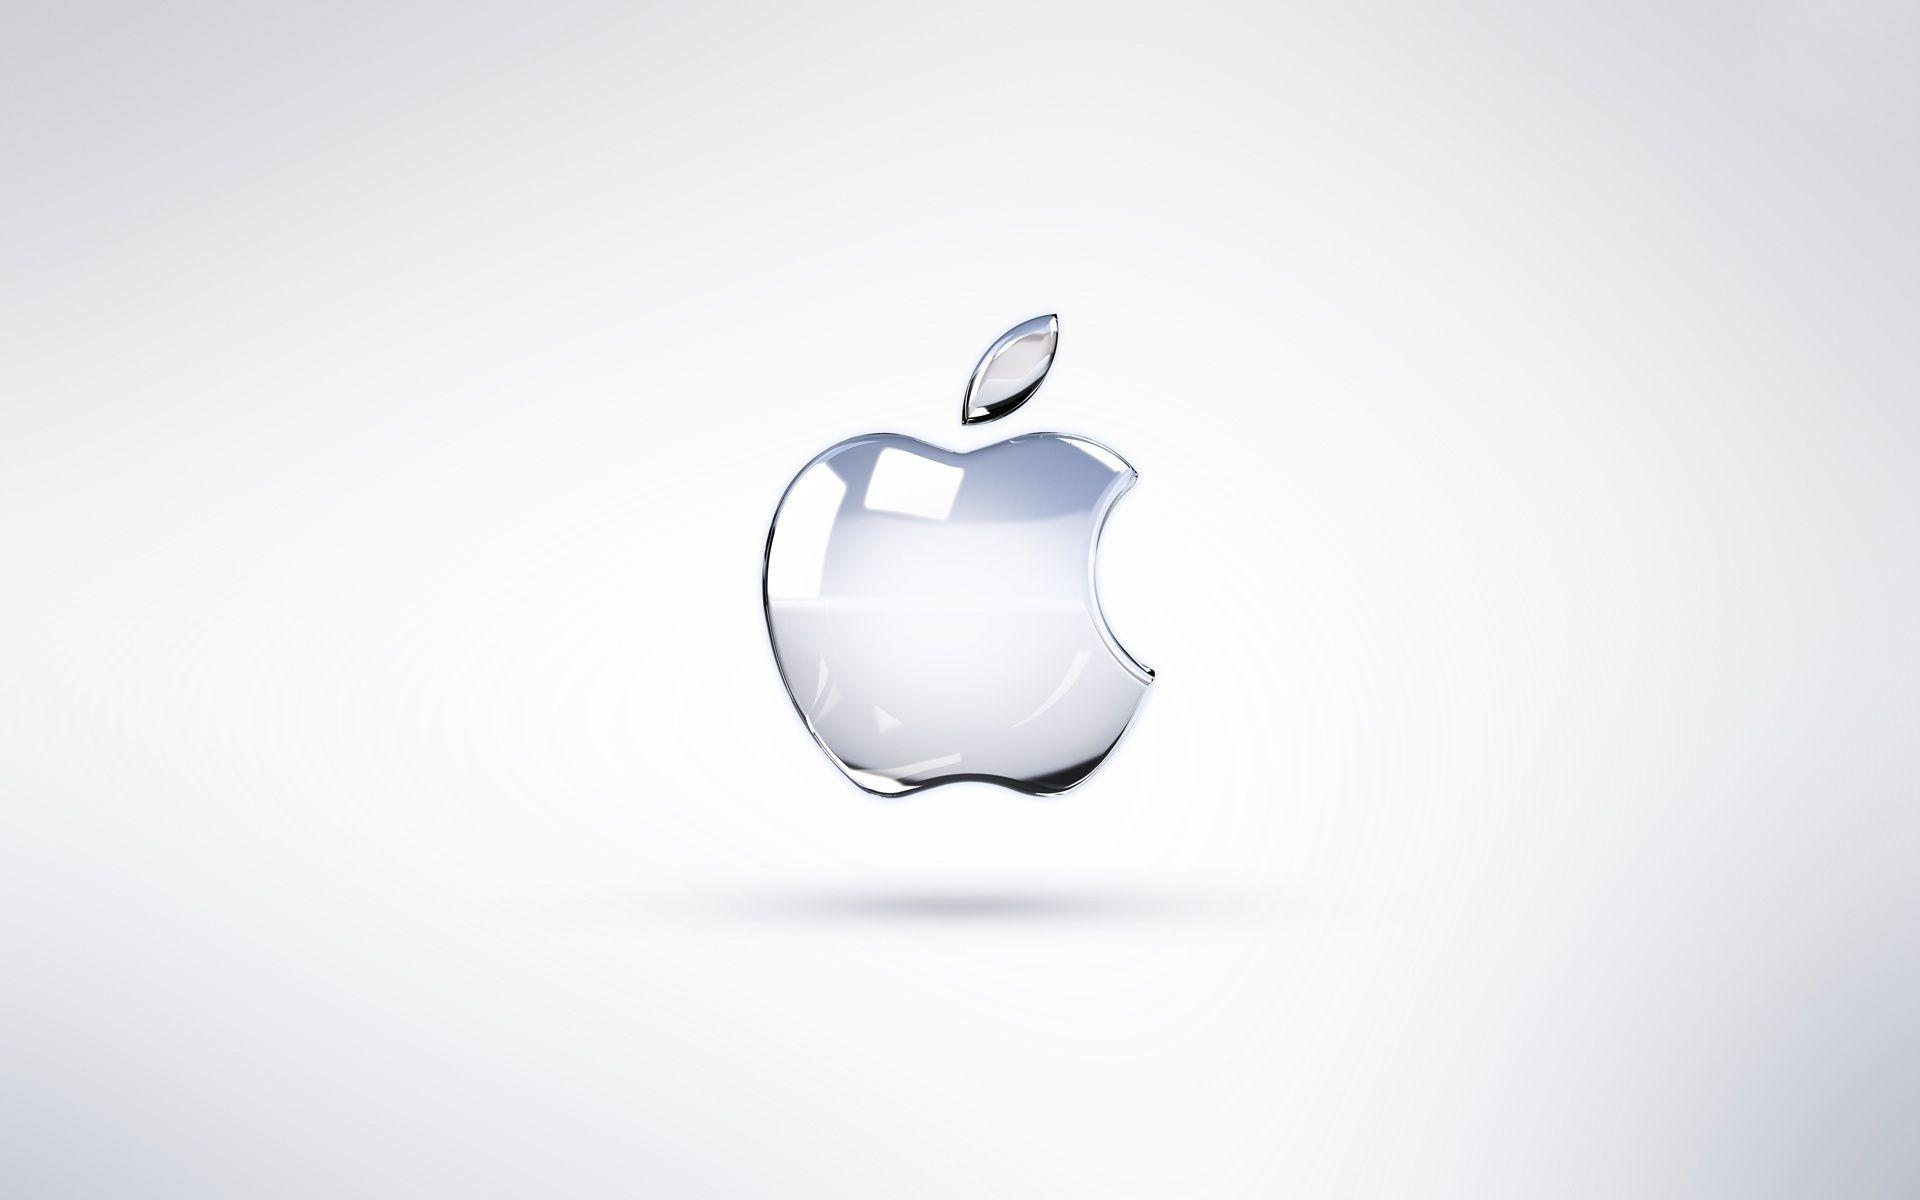 glass apple wallpapers - wallpaper cave